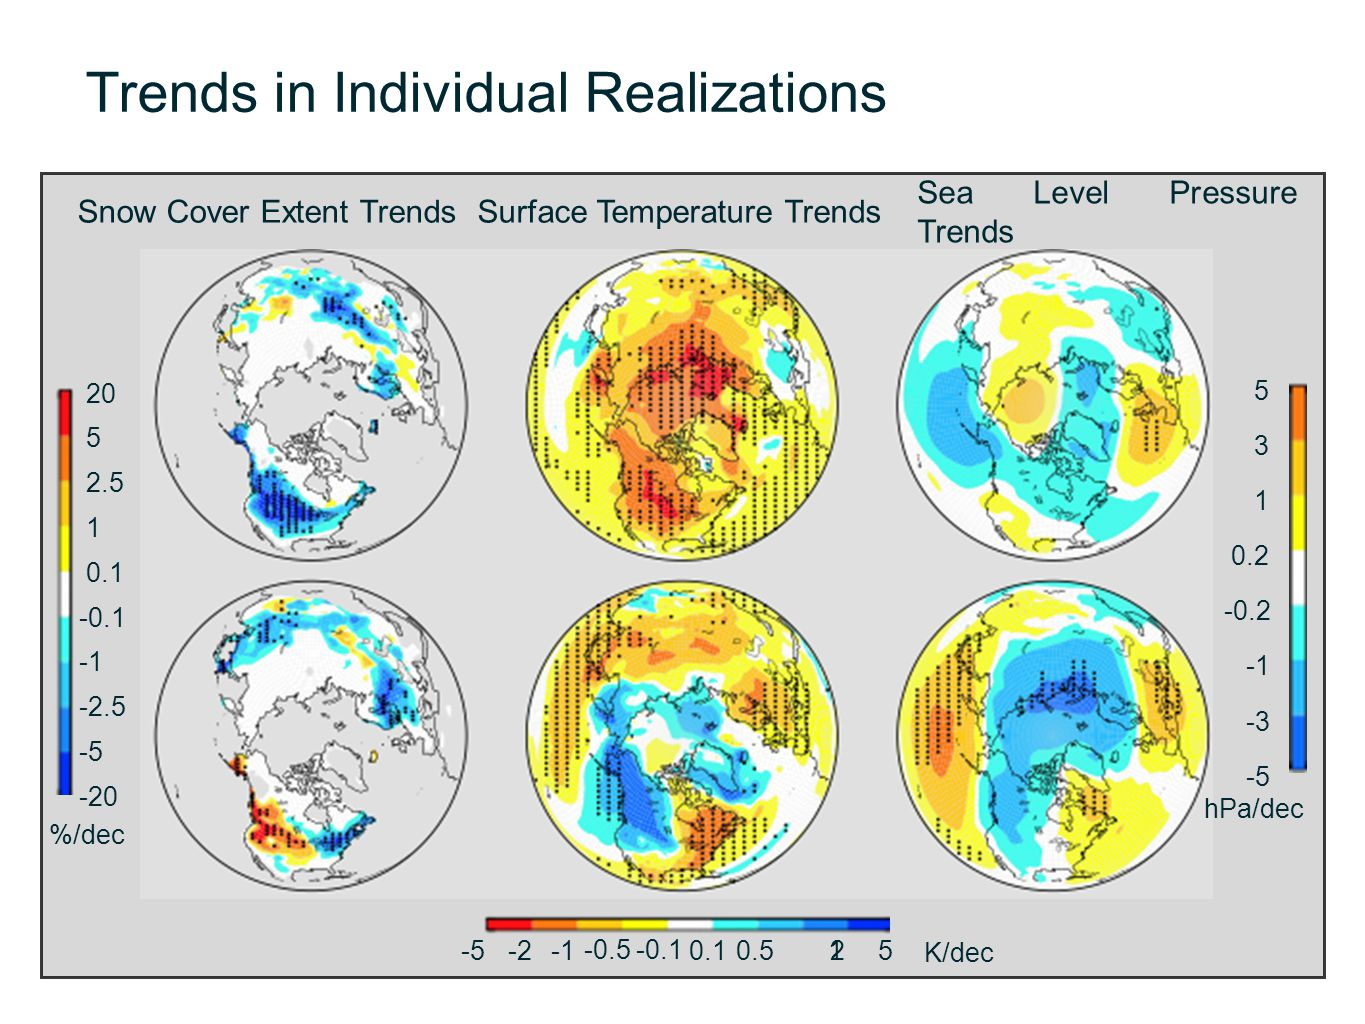 Trends in Individual Realizations Snow Cover Extent Trends 20 5 2.5 1 0.1 -0.1 -2.5 -5 -20 -5-2 -0.5-0.1 0.10.5125 Surface Temperature Trends Sea Leve